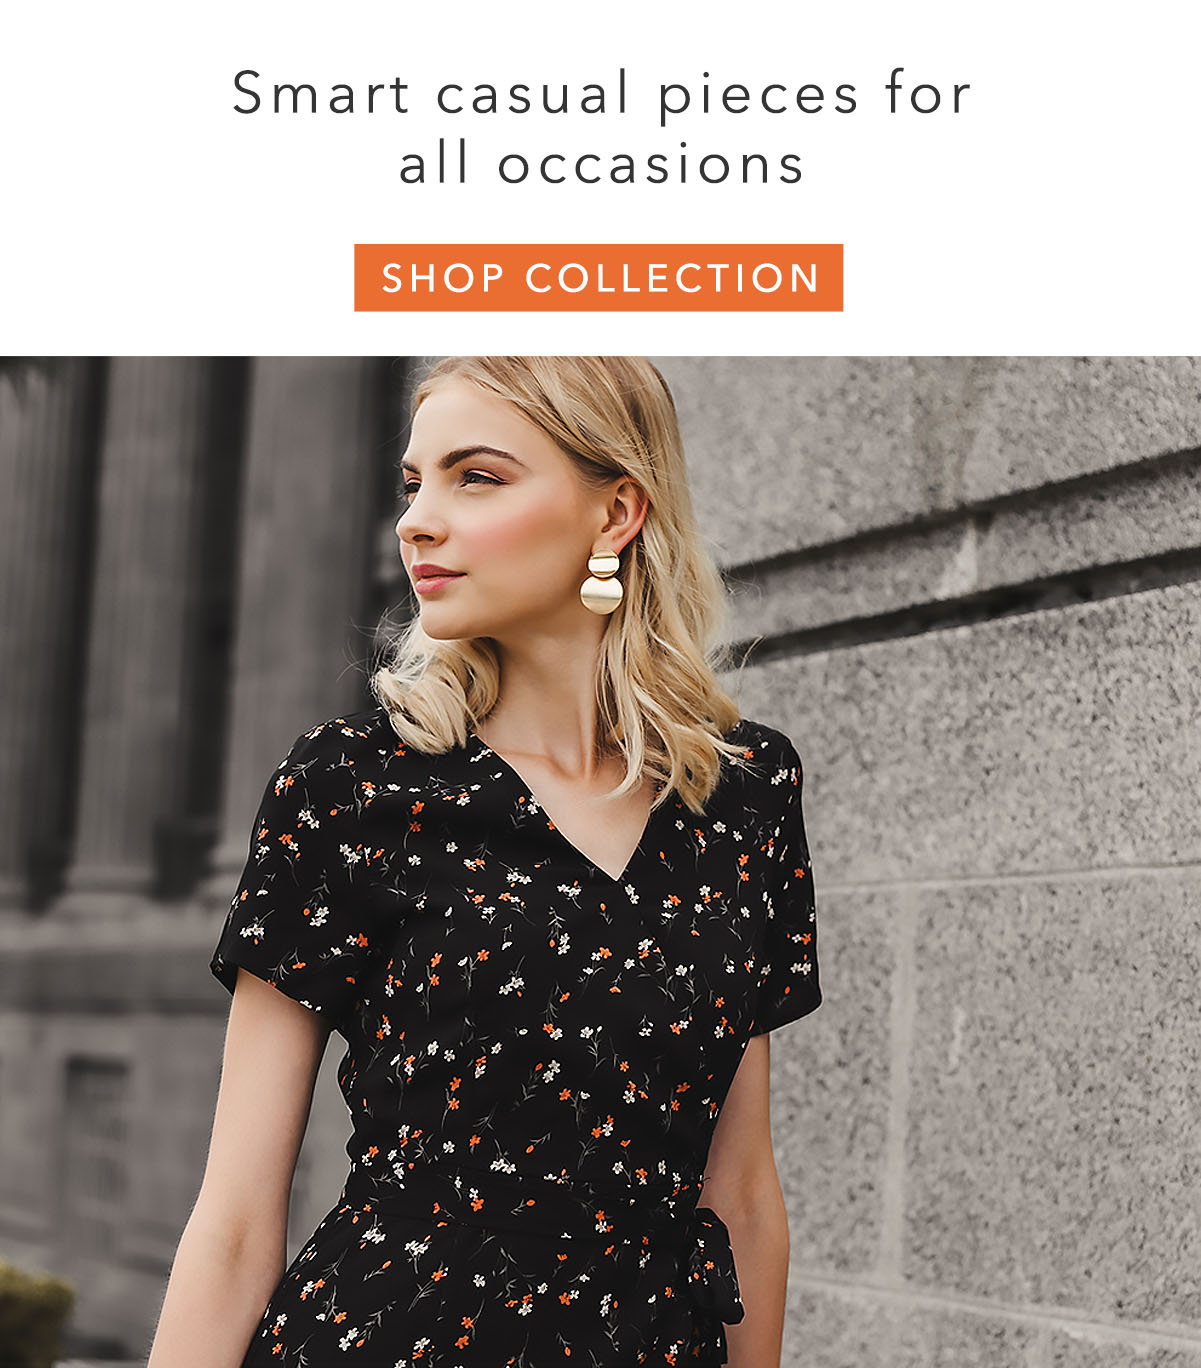 Dressy collection